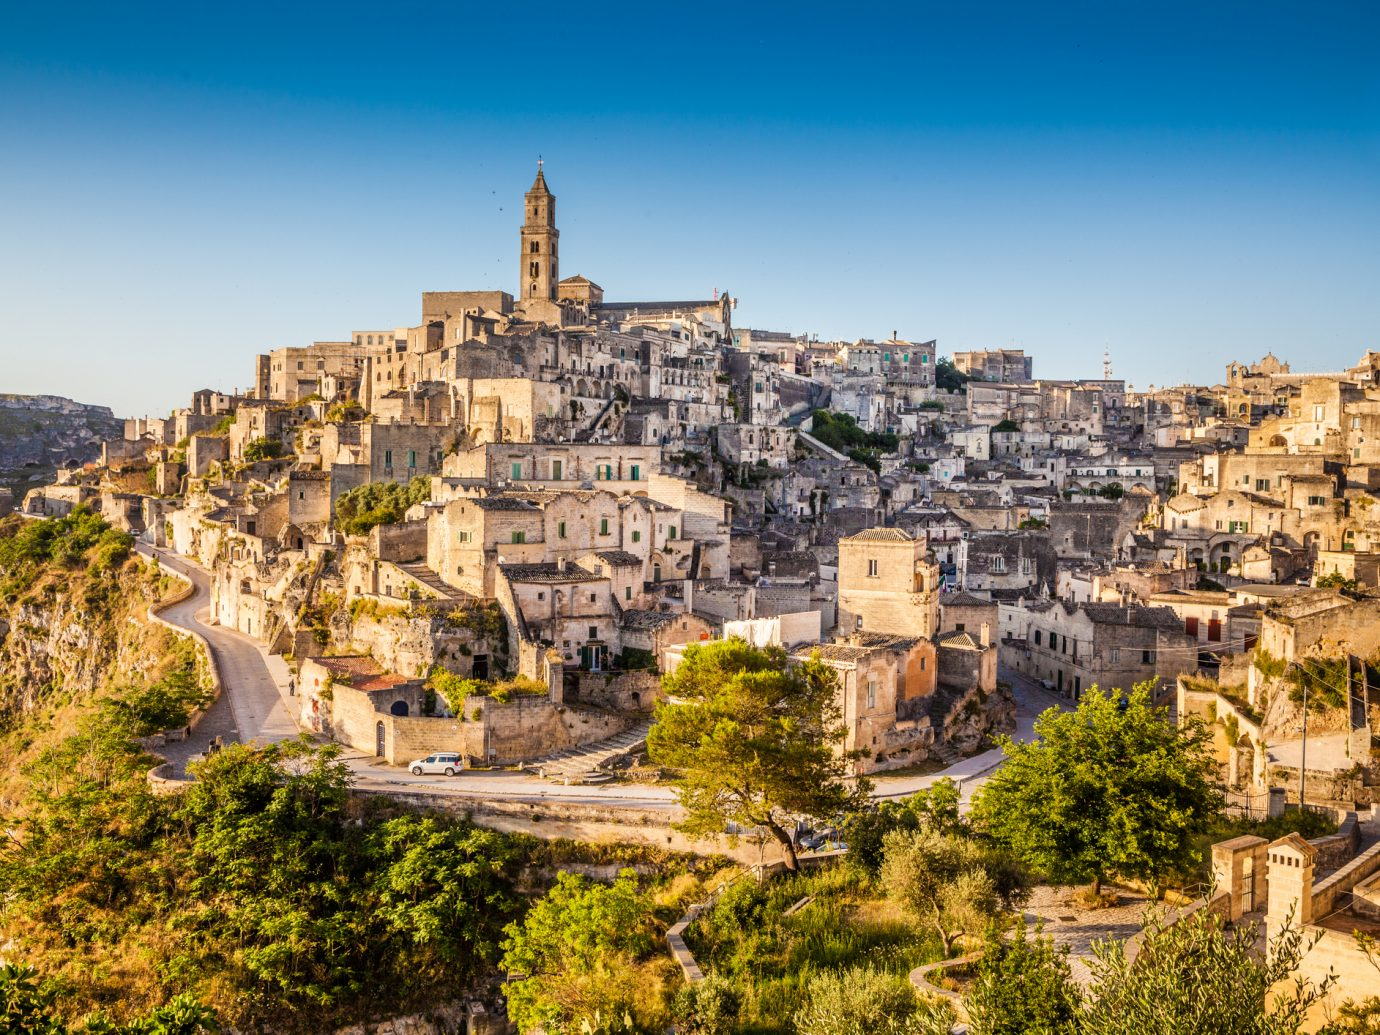 Ancient town of Matera southern Italy.